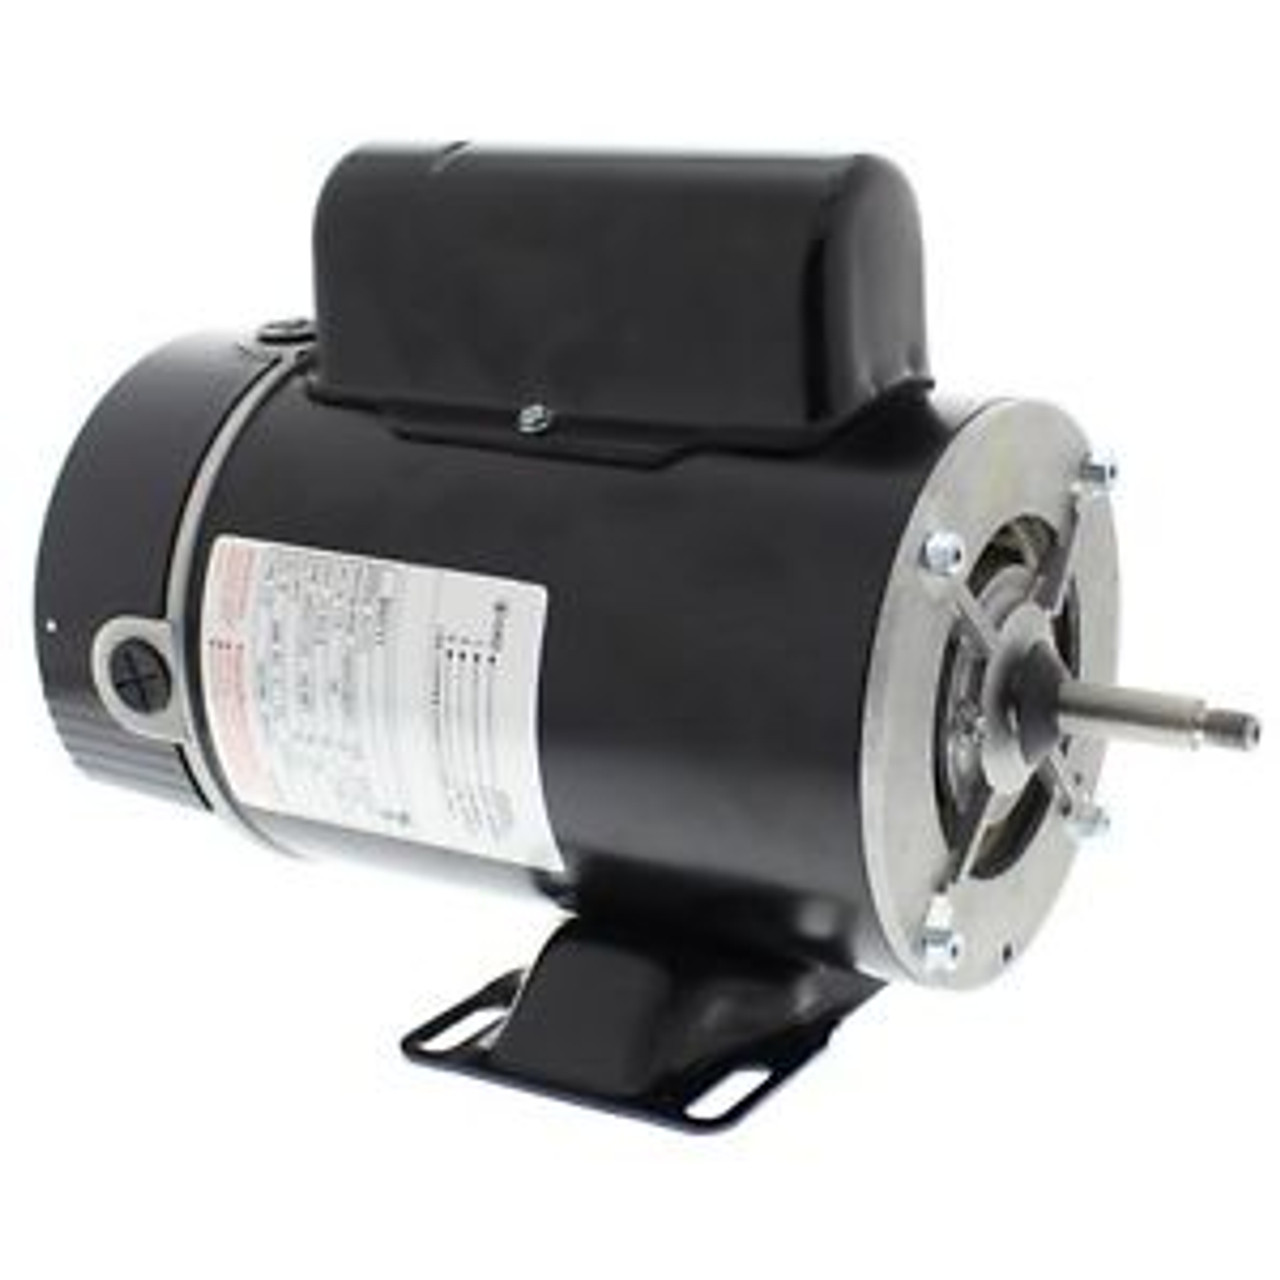 E-BN37V1 (open box)  2 speed Above Ground Pool and Spa Motor 1 to 1/8 HP